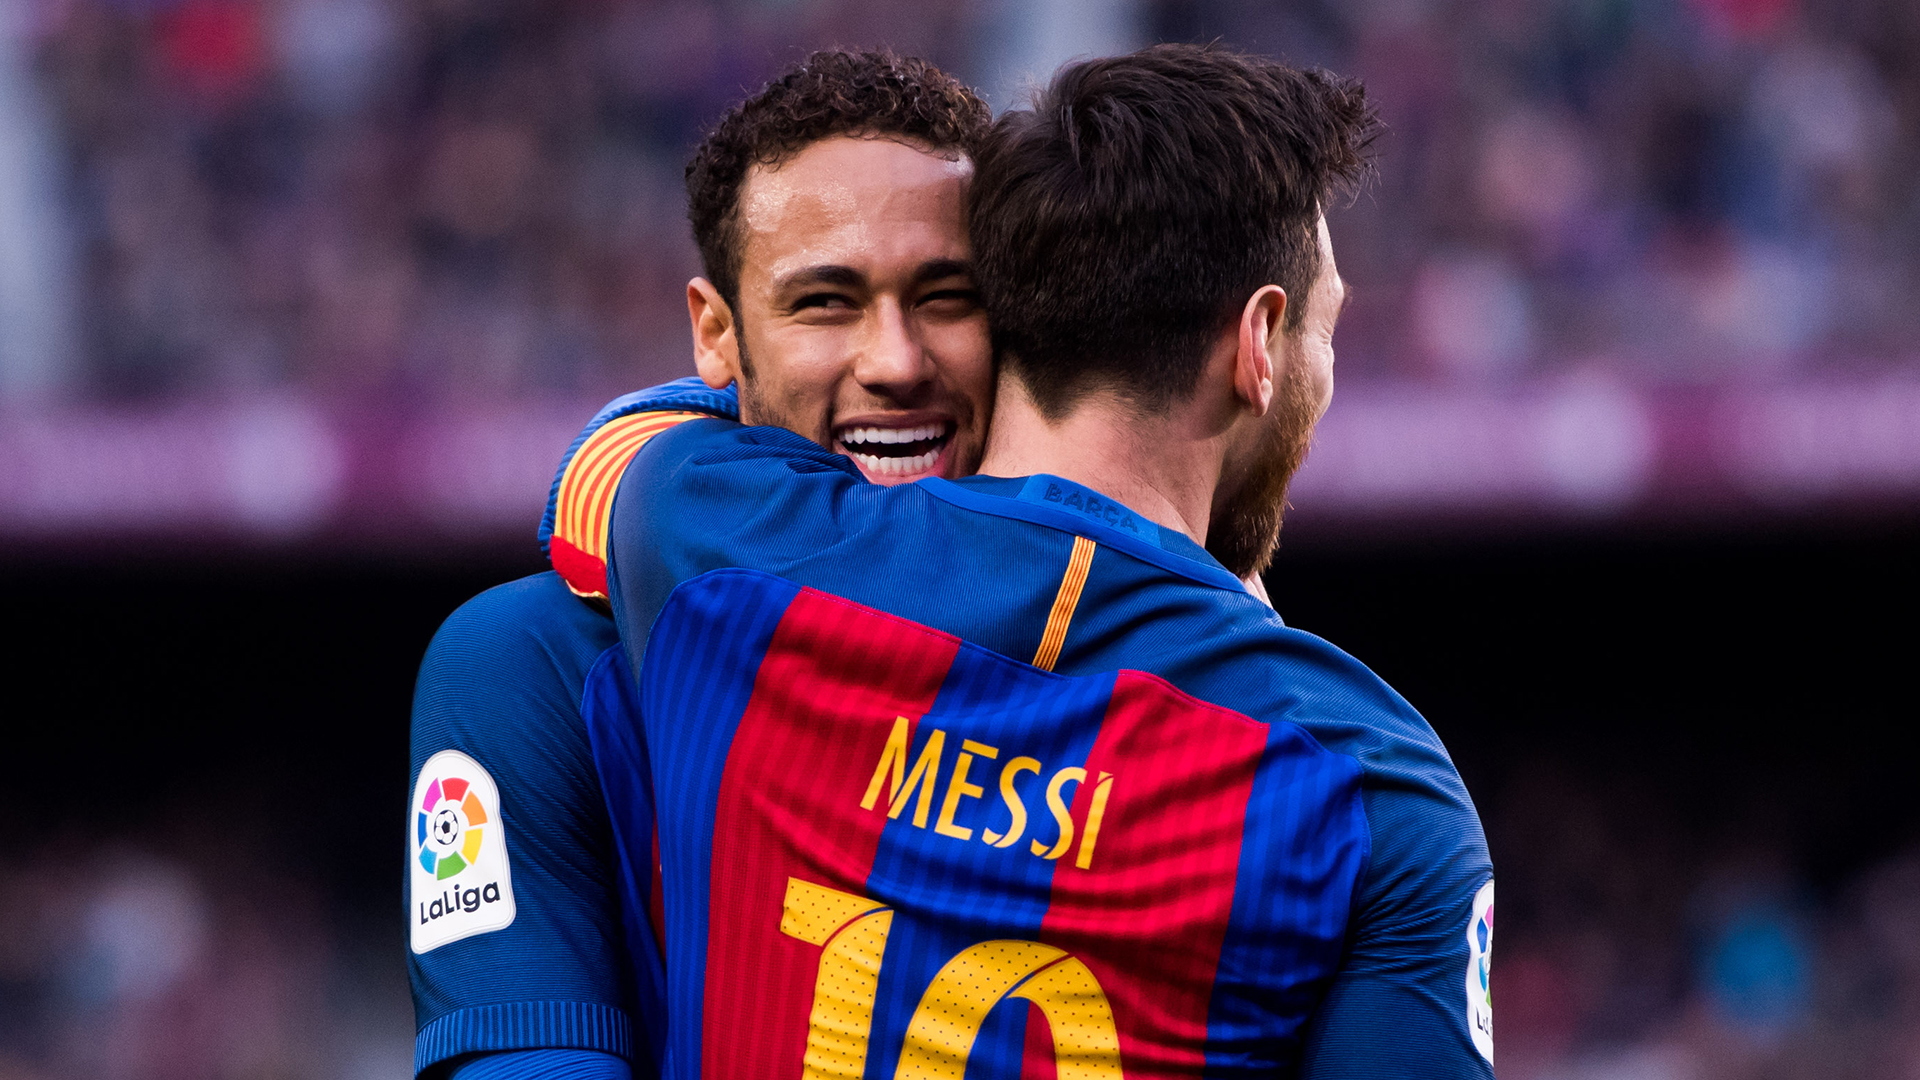 'There are people who don't want Neymar to return' - Messi says some Barcelona members opposed move for PSG star